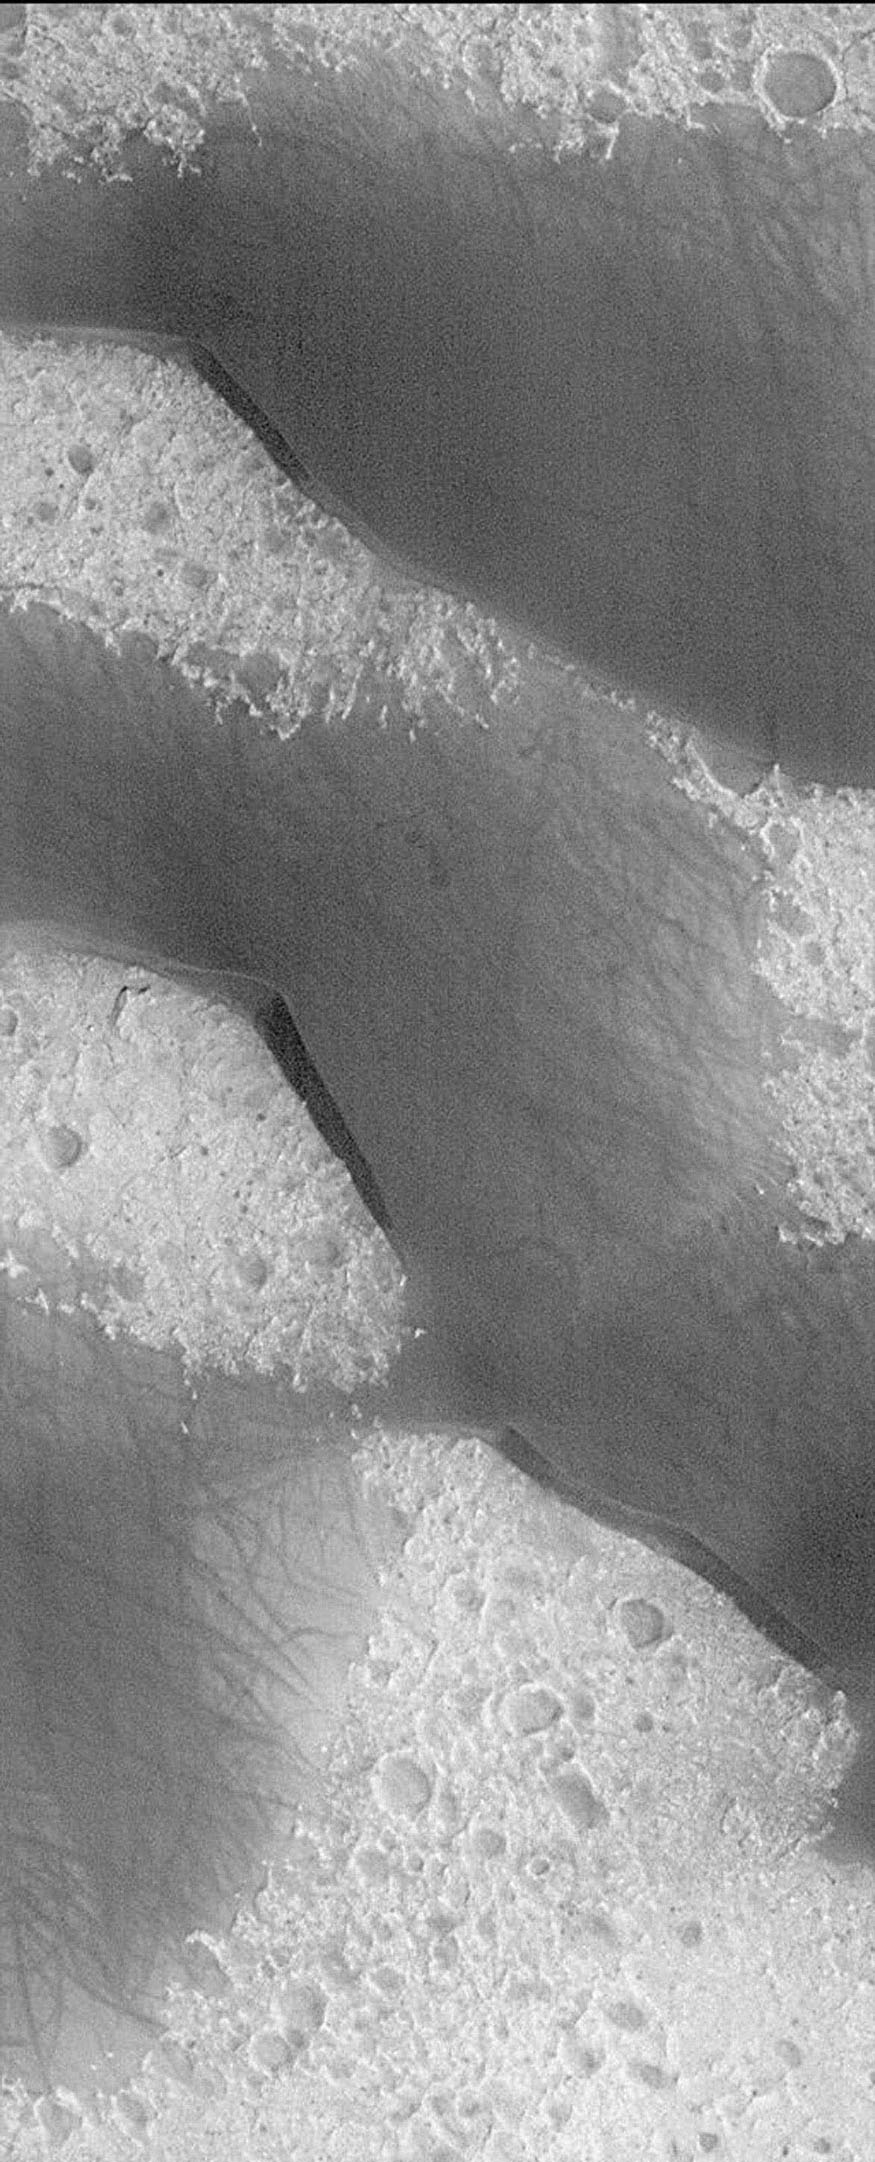 NASA's Mars Global Surveyor shows very large windblown sand dunes of Mars, composed of dark, rather than light grains.